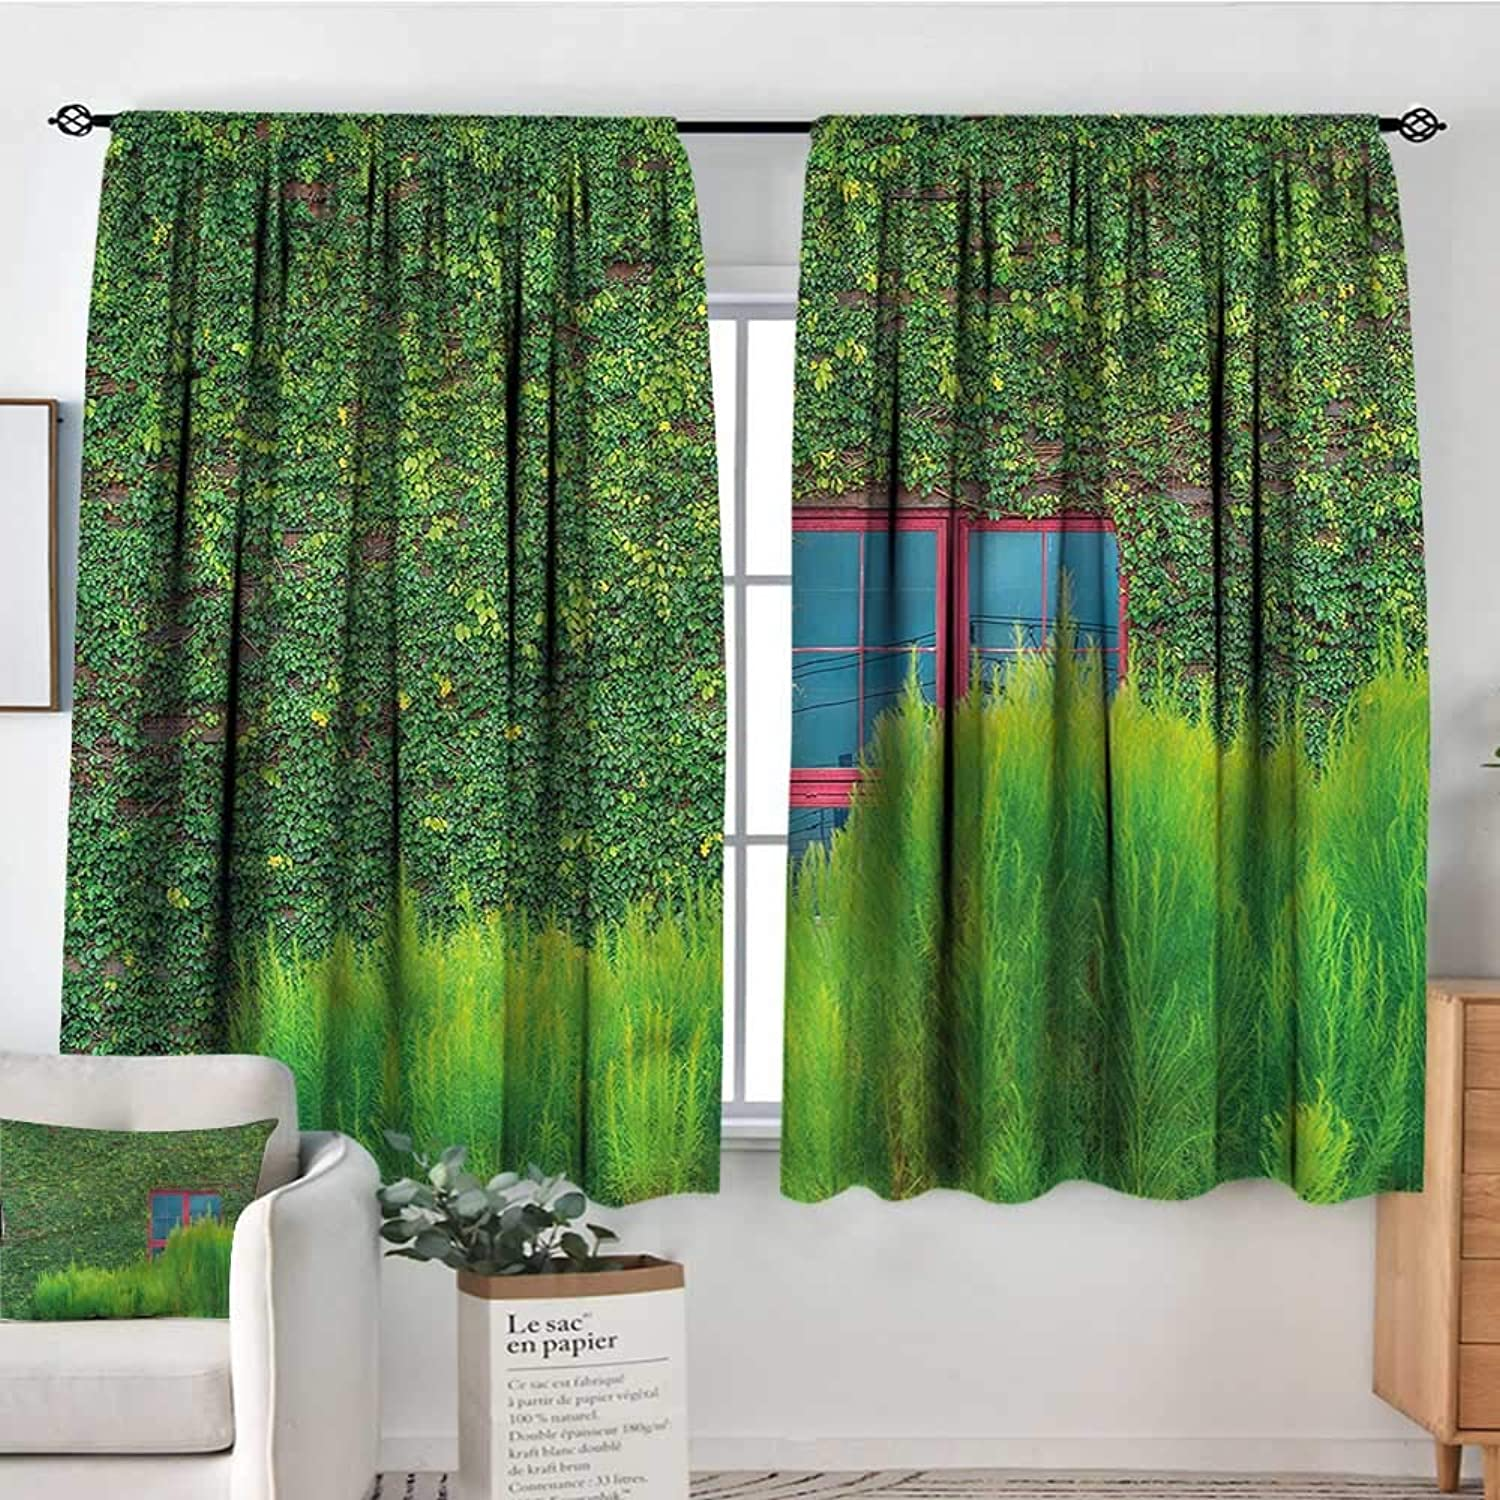 Sanring Green,Indo Panes Drapes Wooden Wall with Green Vines 42 X63  Kids Backout Curtains for Bedroom